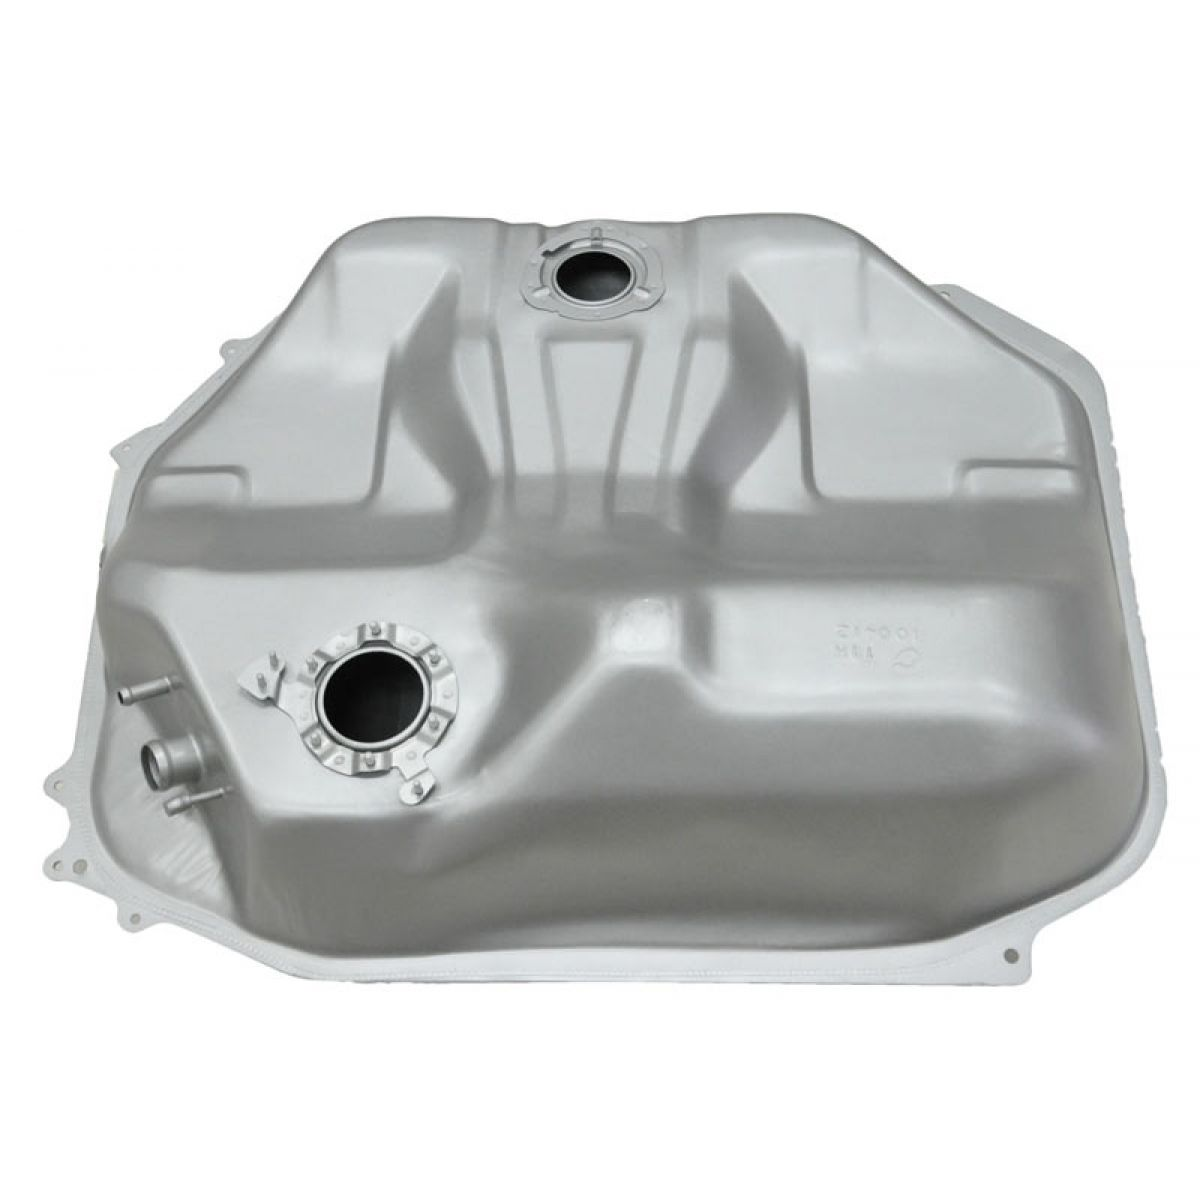 12 Gallon Gas Fuel Tank NEW For Acura Integra 90 91 92 93